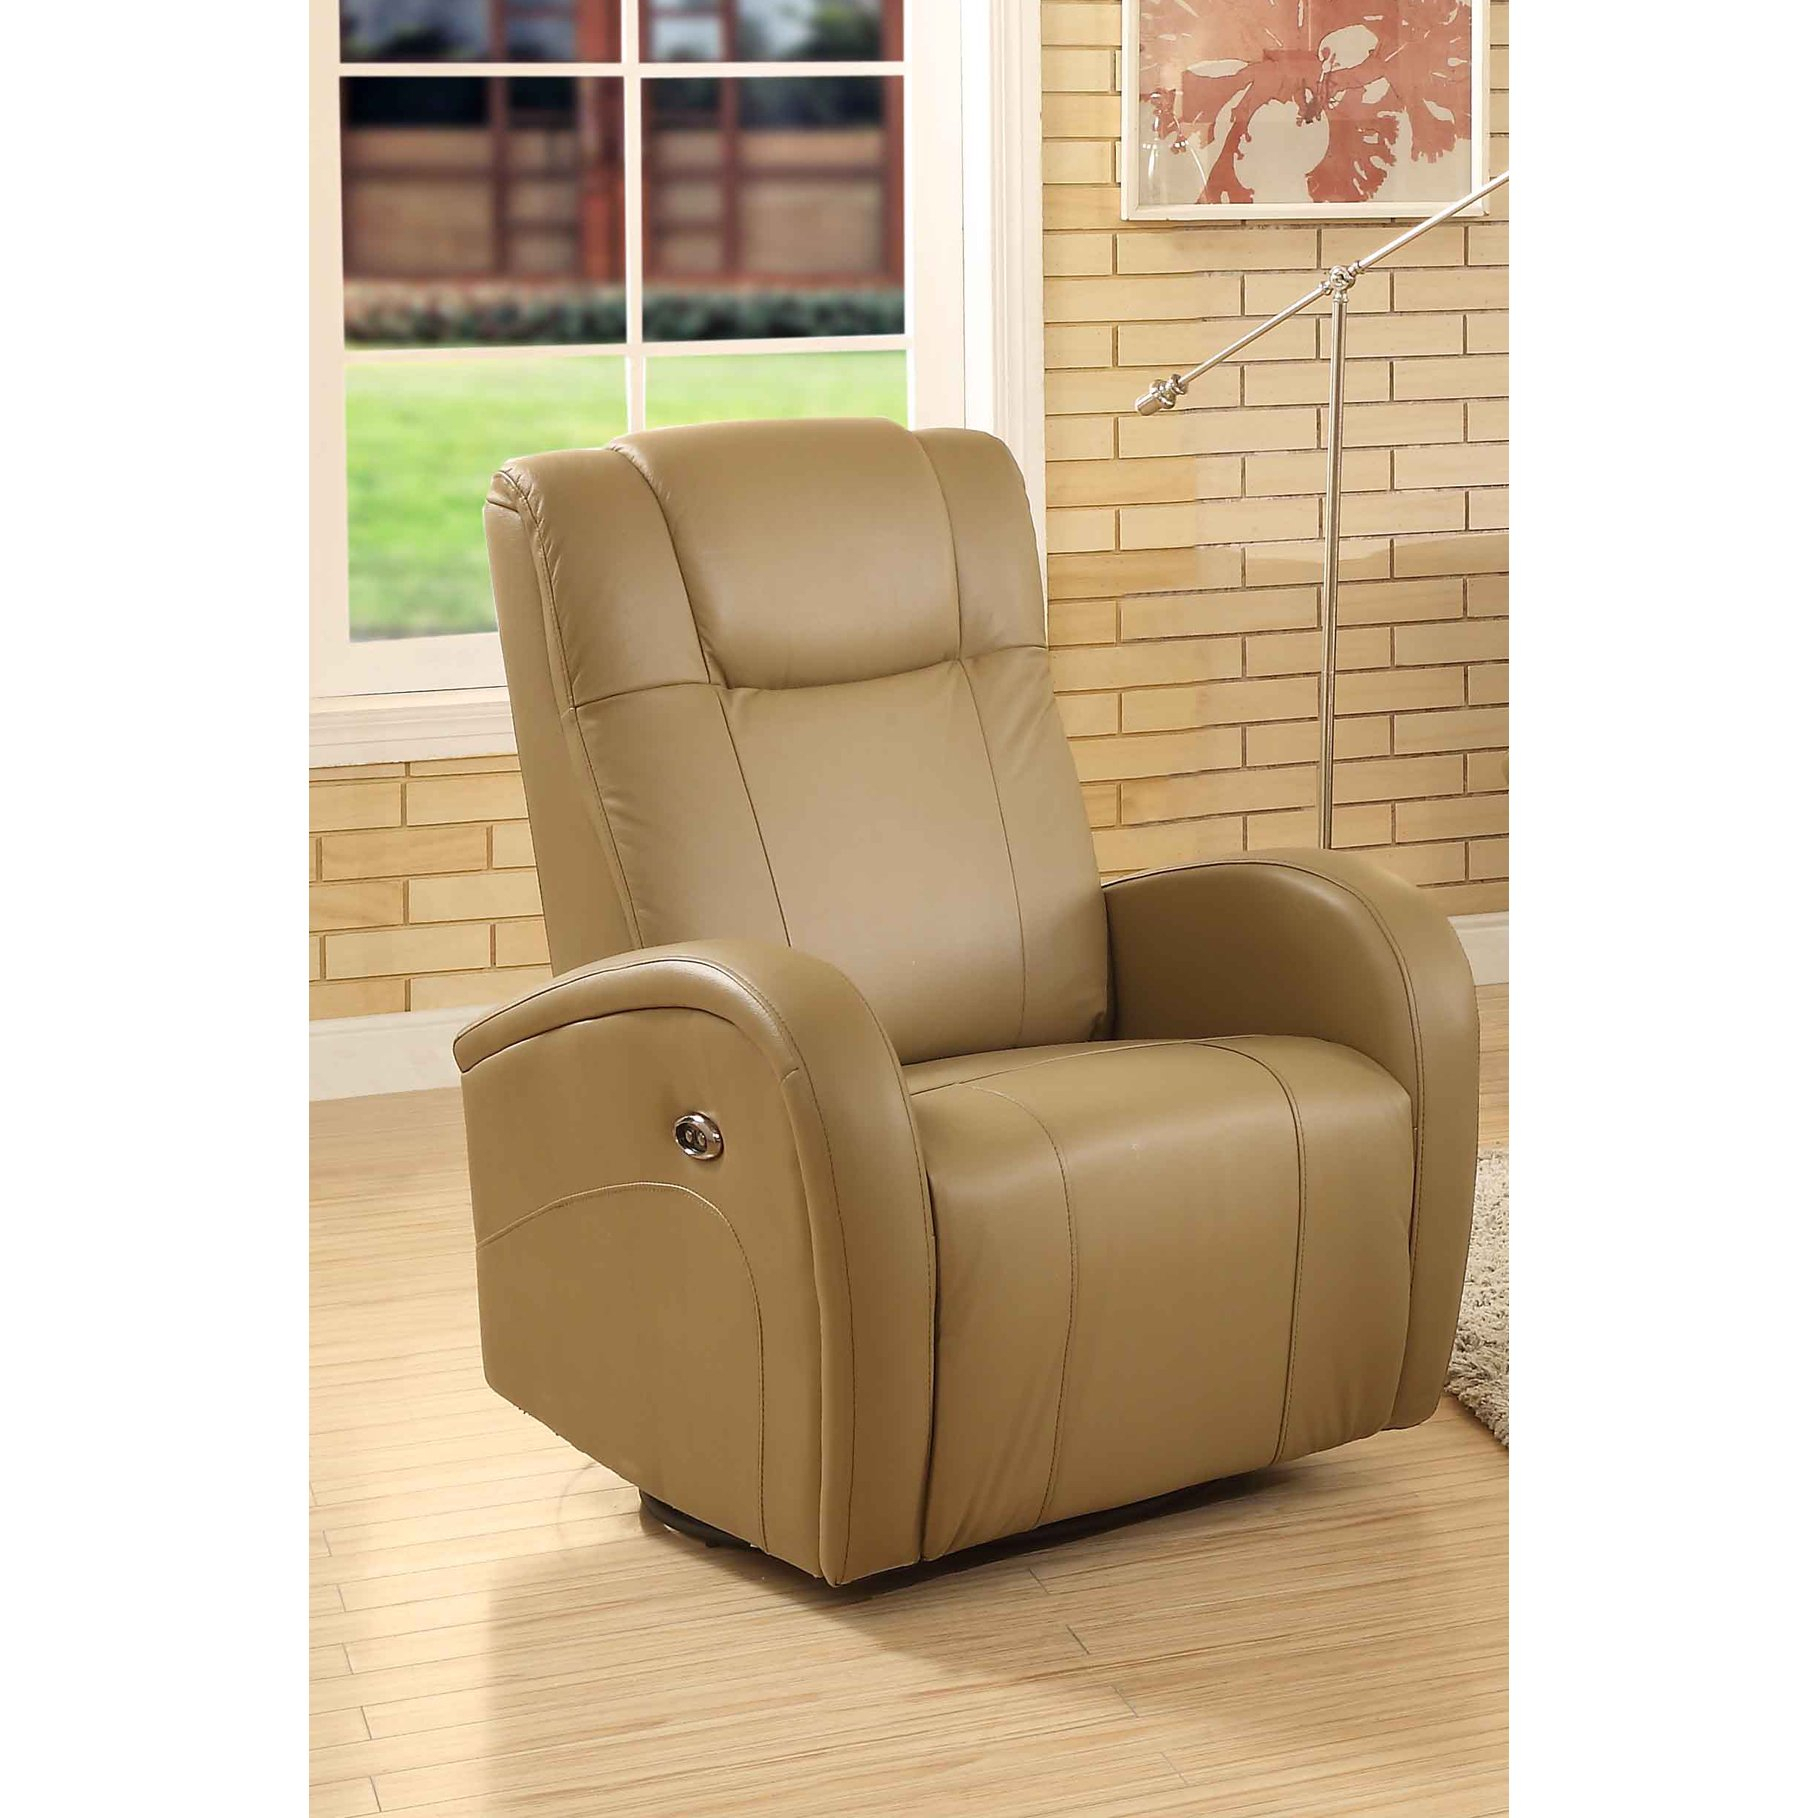 Shop Easy Living Swiss Leather Swivel Power Glider Recliner With Usb Regarding Gannon Linen Power Swivel Recliners (View 10 of 25)